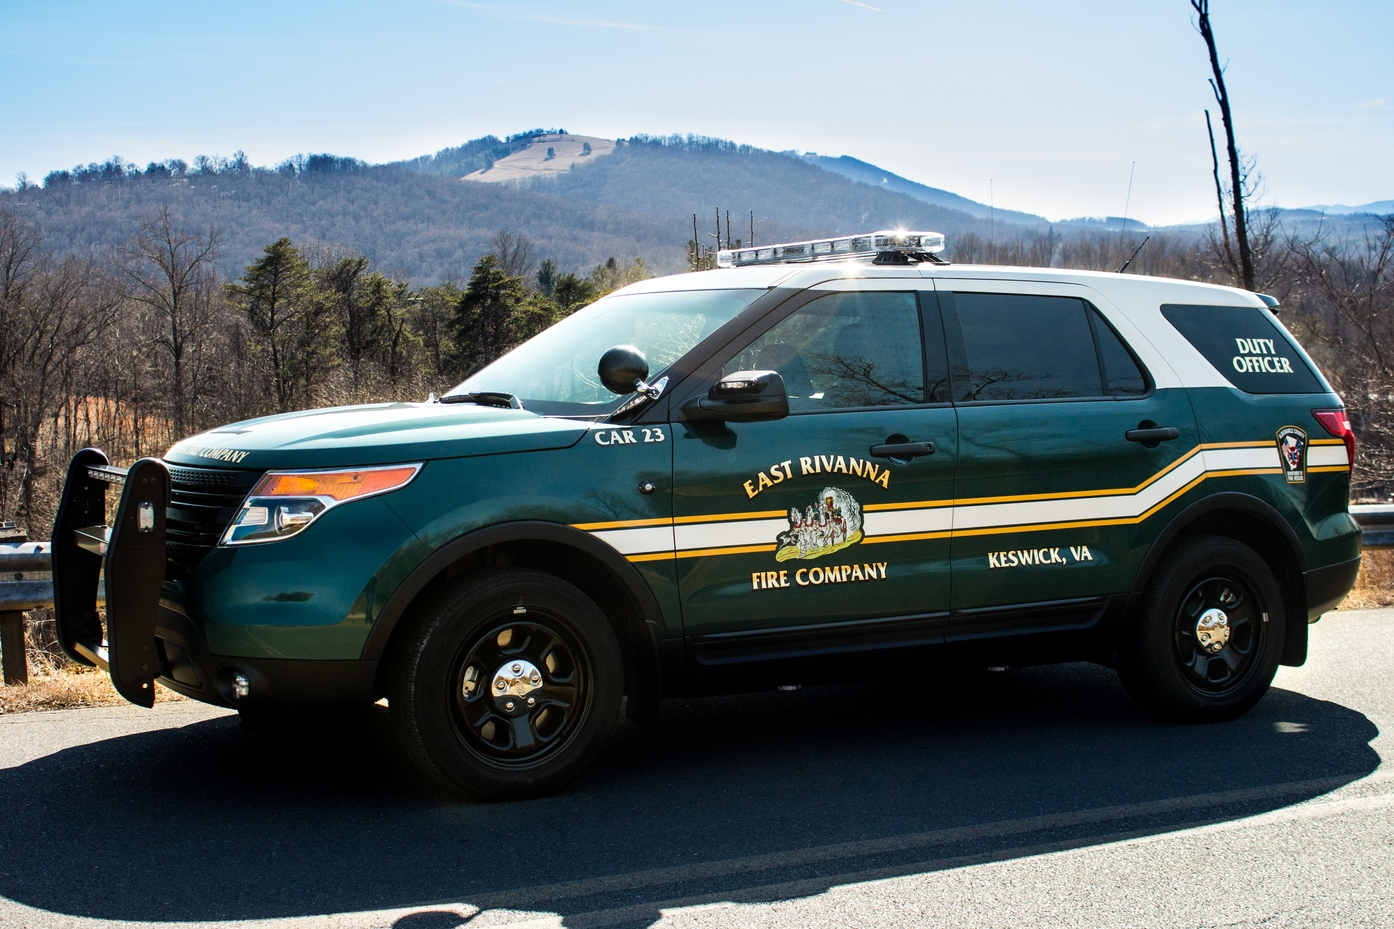 CAR 23   • 2015 FORD POLICE INTERCEPTOR UTILITY • DUTY OFFICER/INCIDENT COMMAND VEHICLE